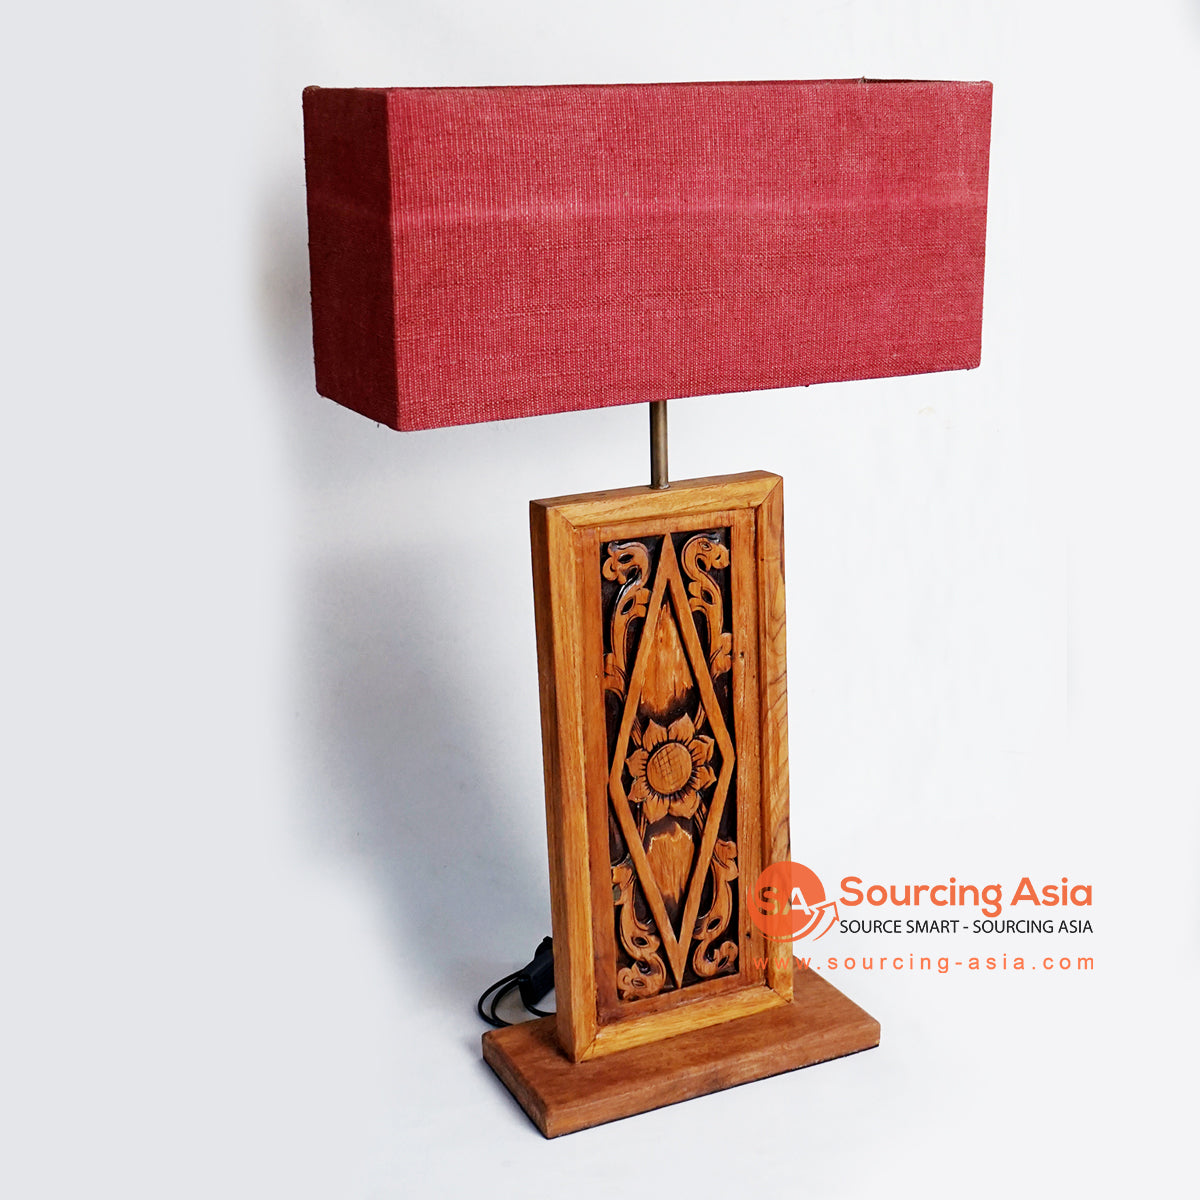 CHKC019 WOOD CARVING TABLE LAMP